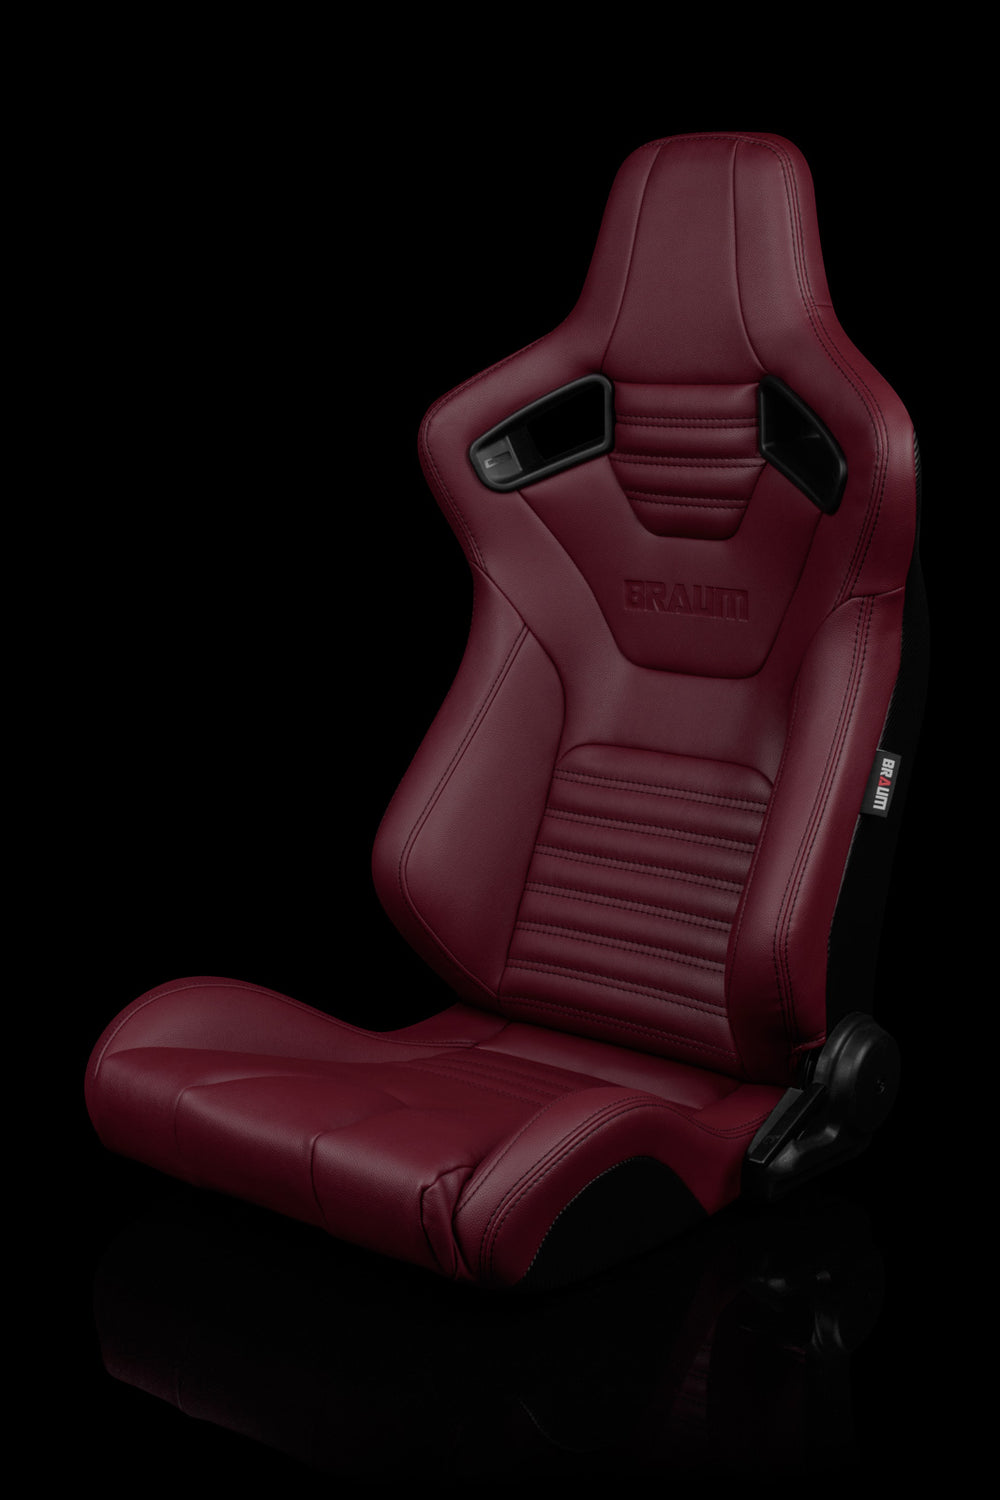 ELITE-X SERIES RACING SEATS (MAROON LEATHERETTE) – PAIR